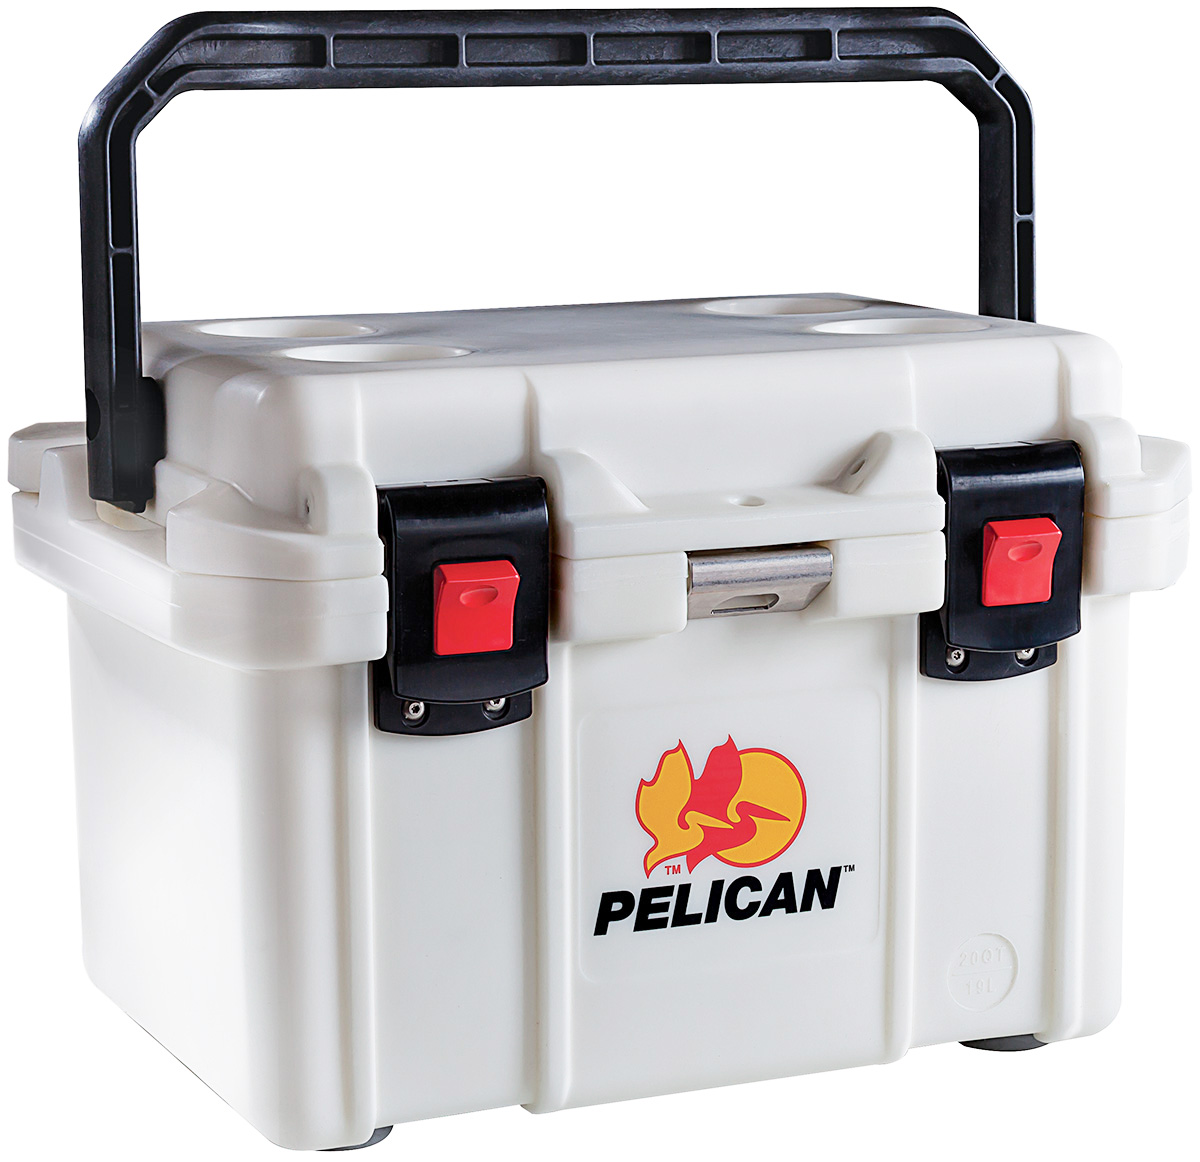 Small Portable Coolers : Qt cooler elite pelican